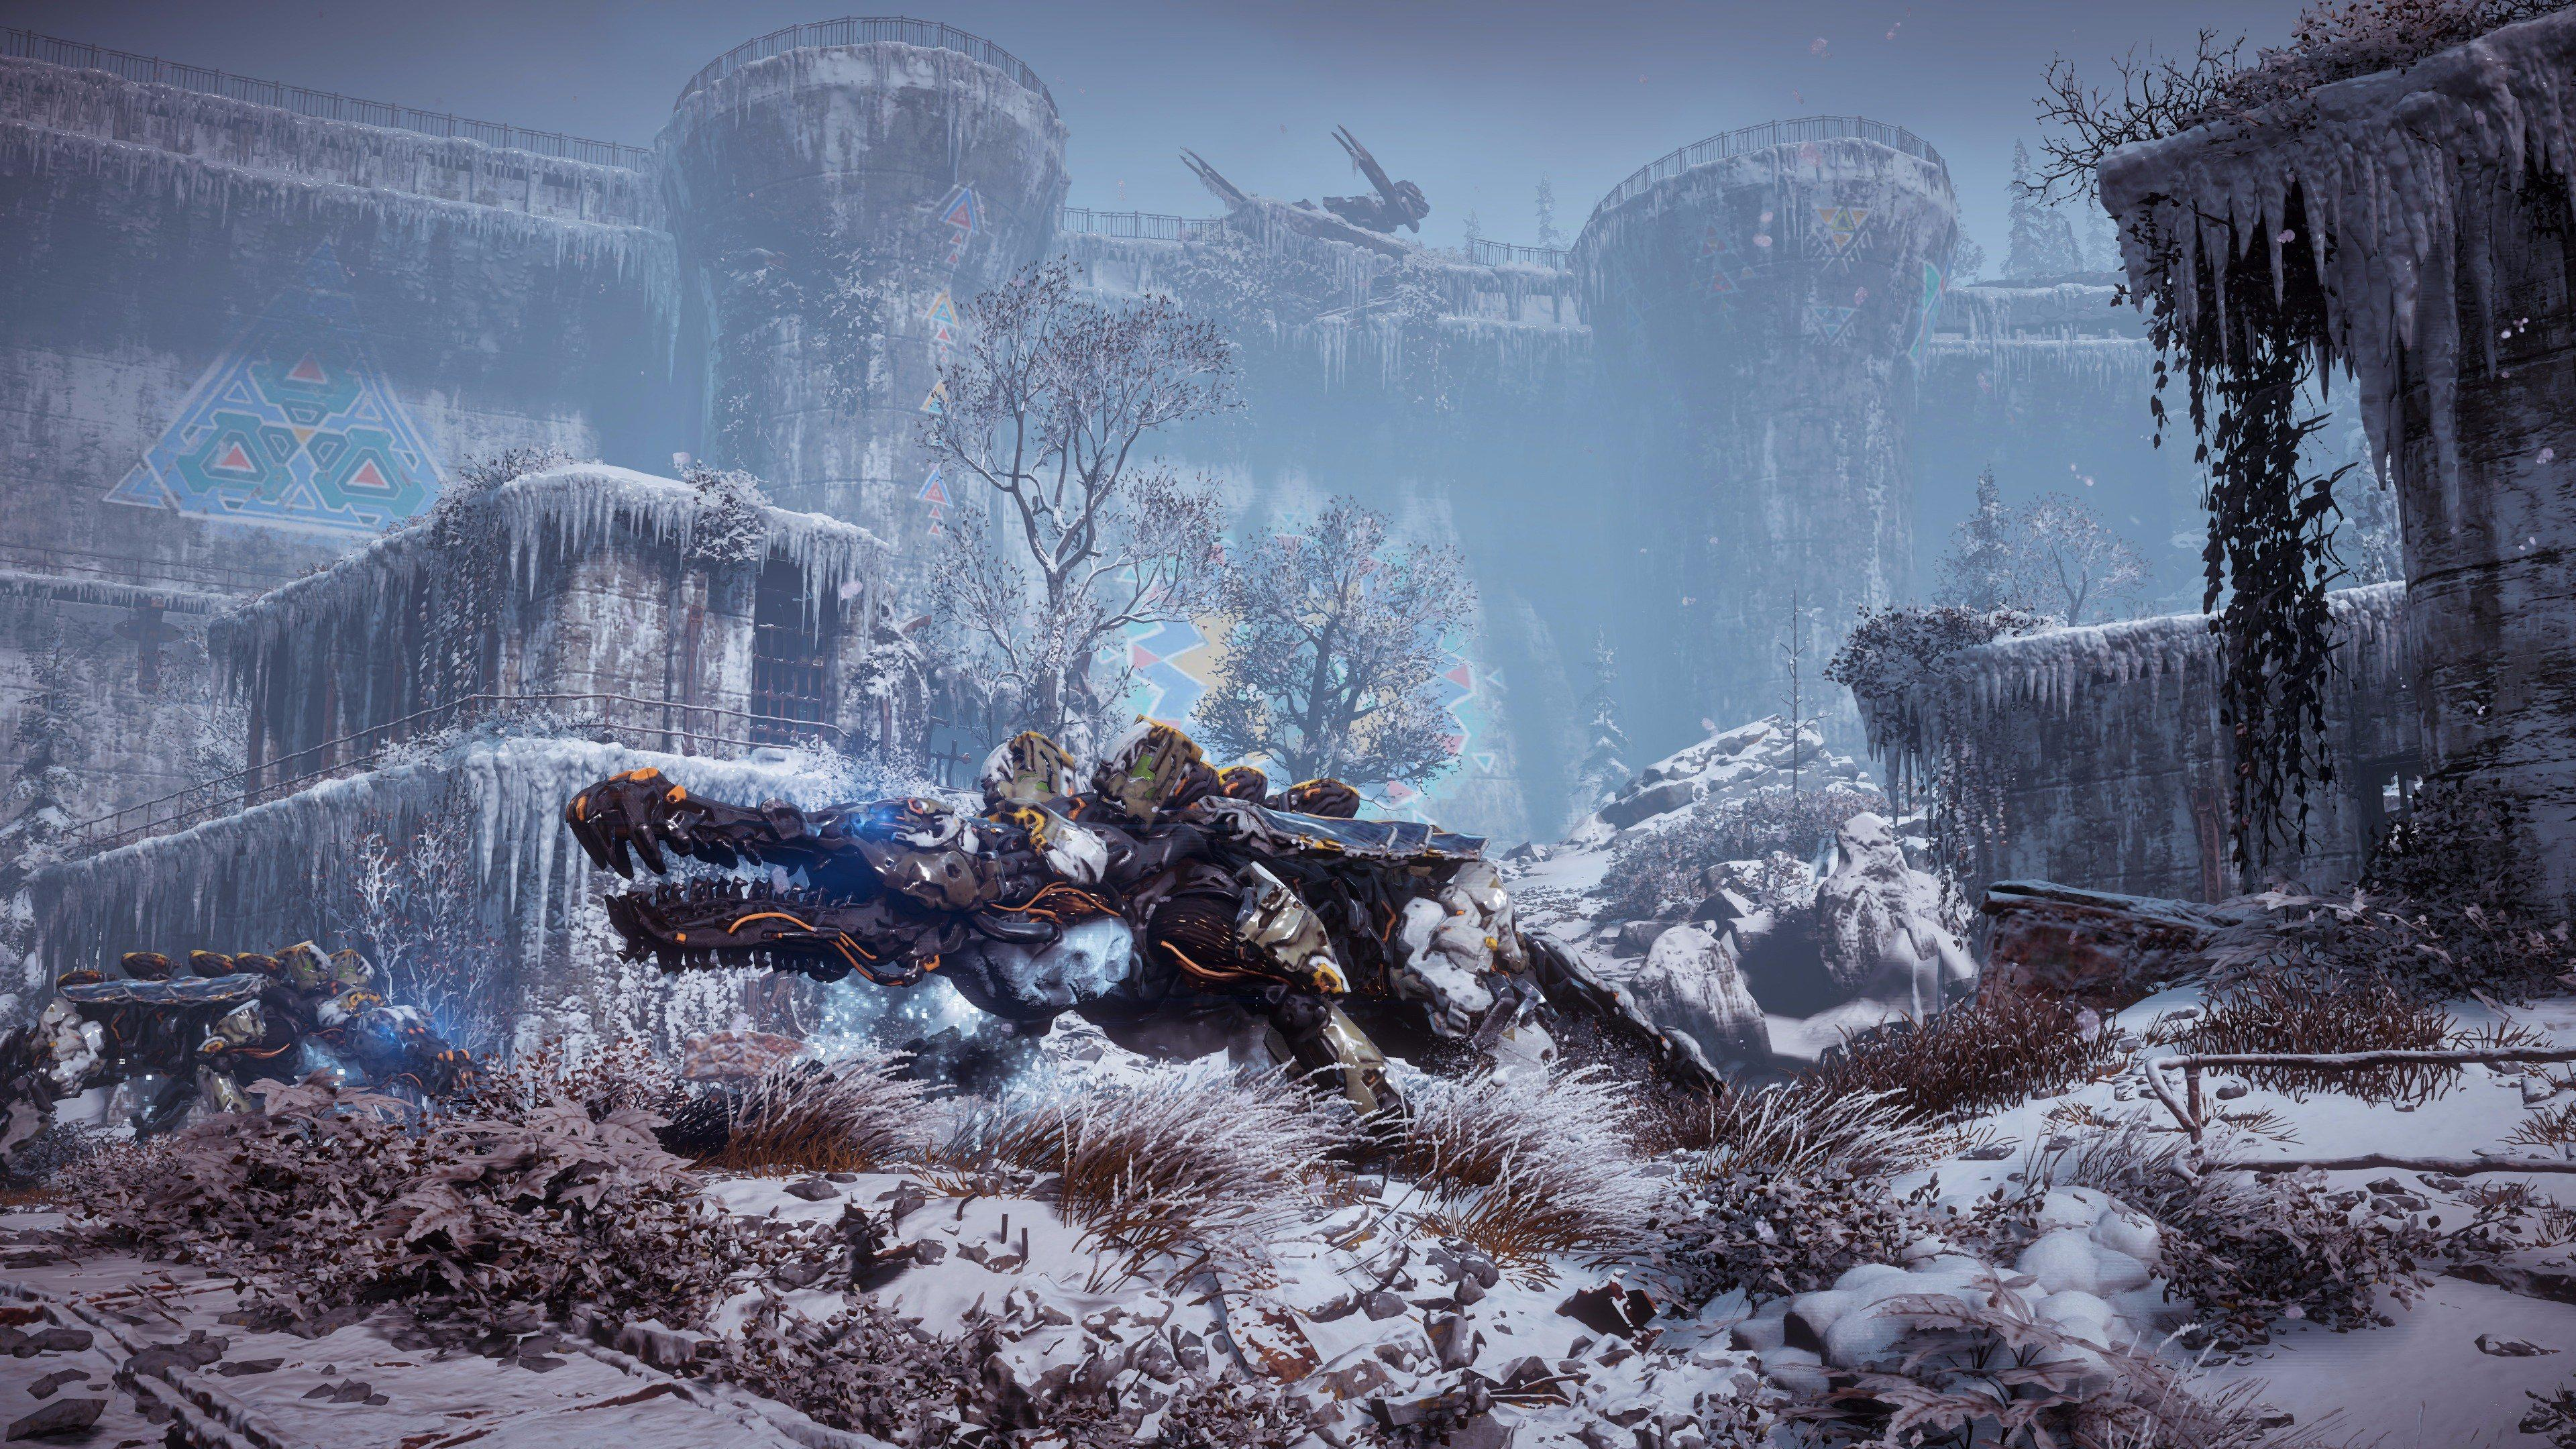 Horizon : Zero Dawn 'The Frozen Wilds' s'offre une vidéo de gameplay